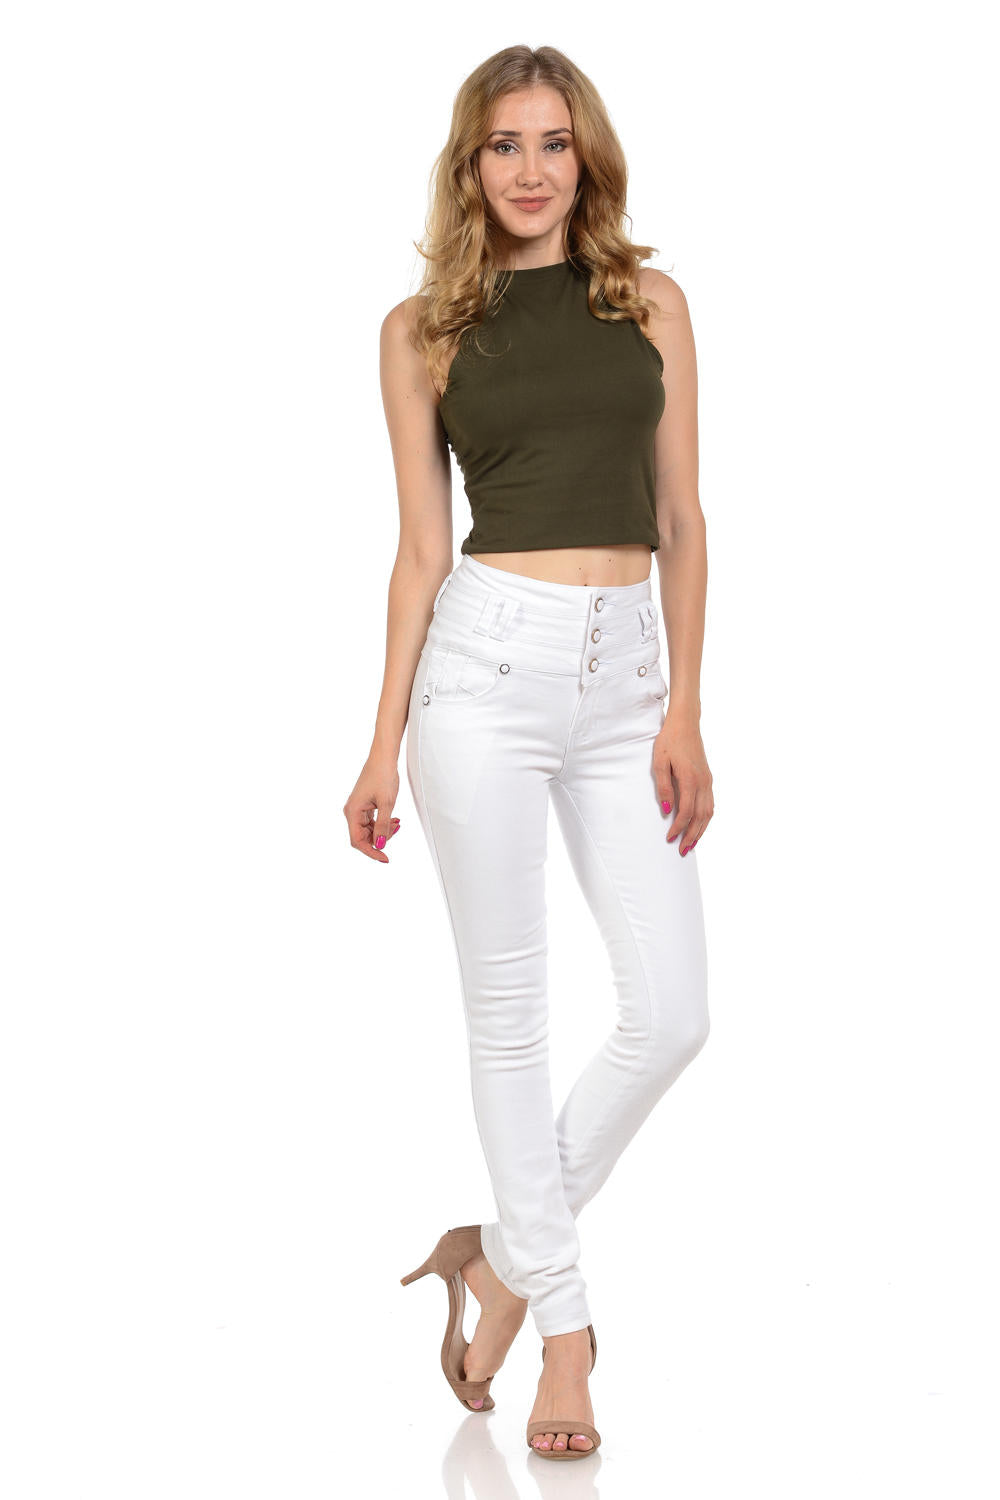 Pasion Women's Jeans - Push Up -  N3005